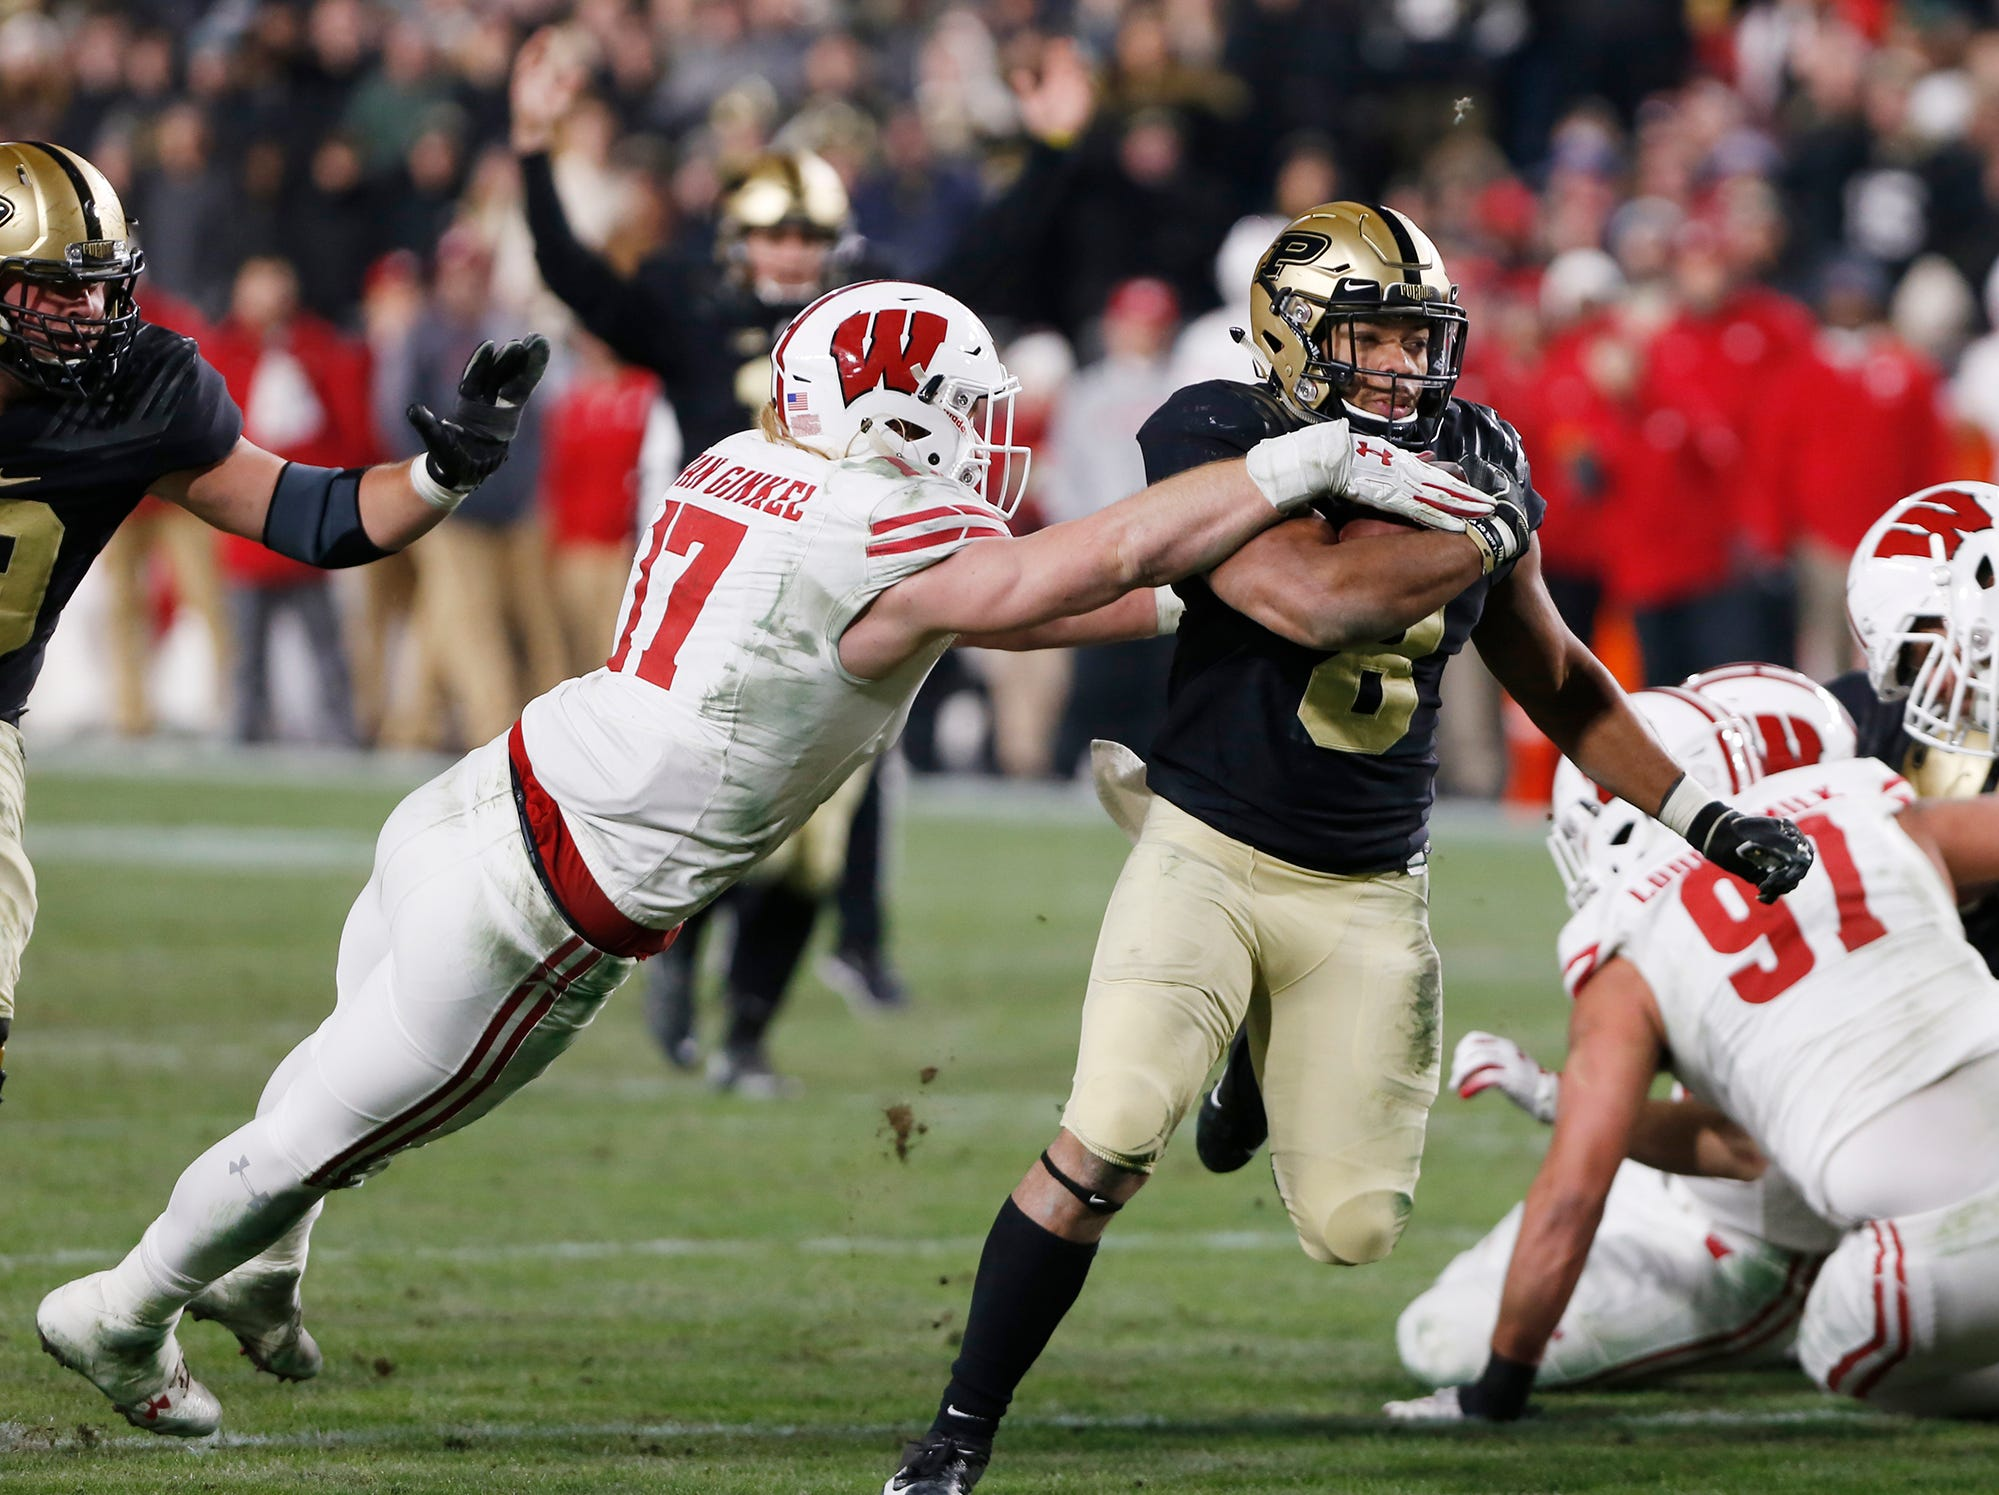 Markell Jones of Purdue shakes off Andrew Van Ginkel of Wisconsin and runs for a touchdown at 4:08 in the third quarter Saturday, November 17, 2018, at Ross-Ade Stadium. Purdue fell to Wisconsin 47-44 3OT.